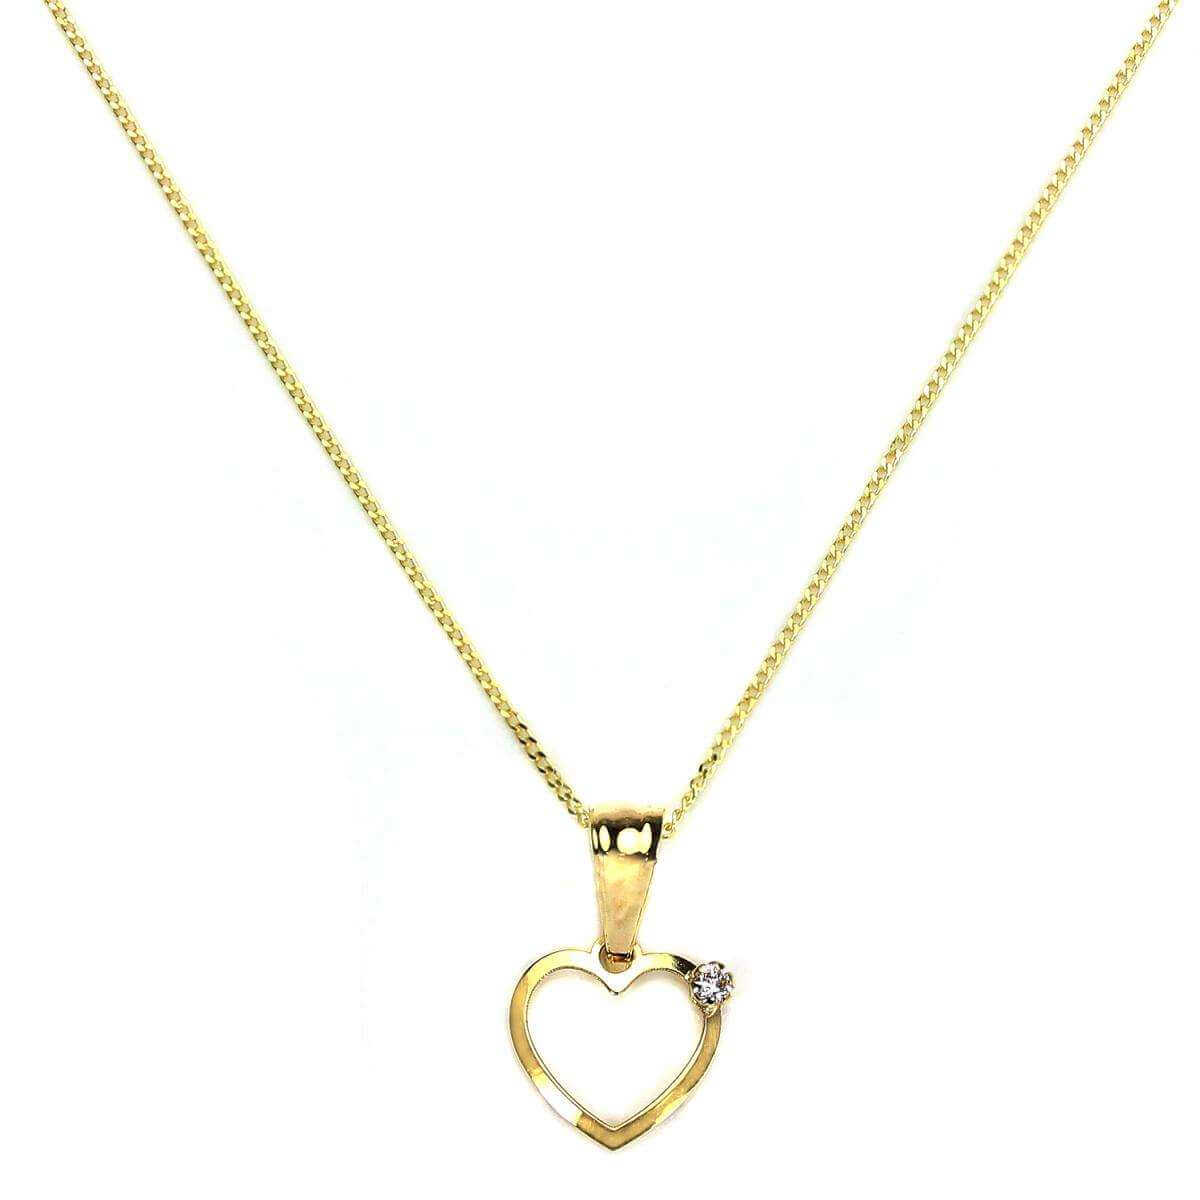 9ct Gold Light Open Heart with Diamond Pendant